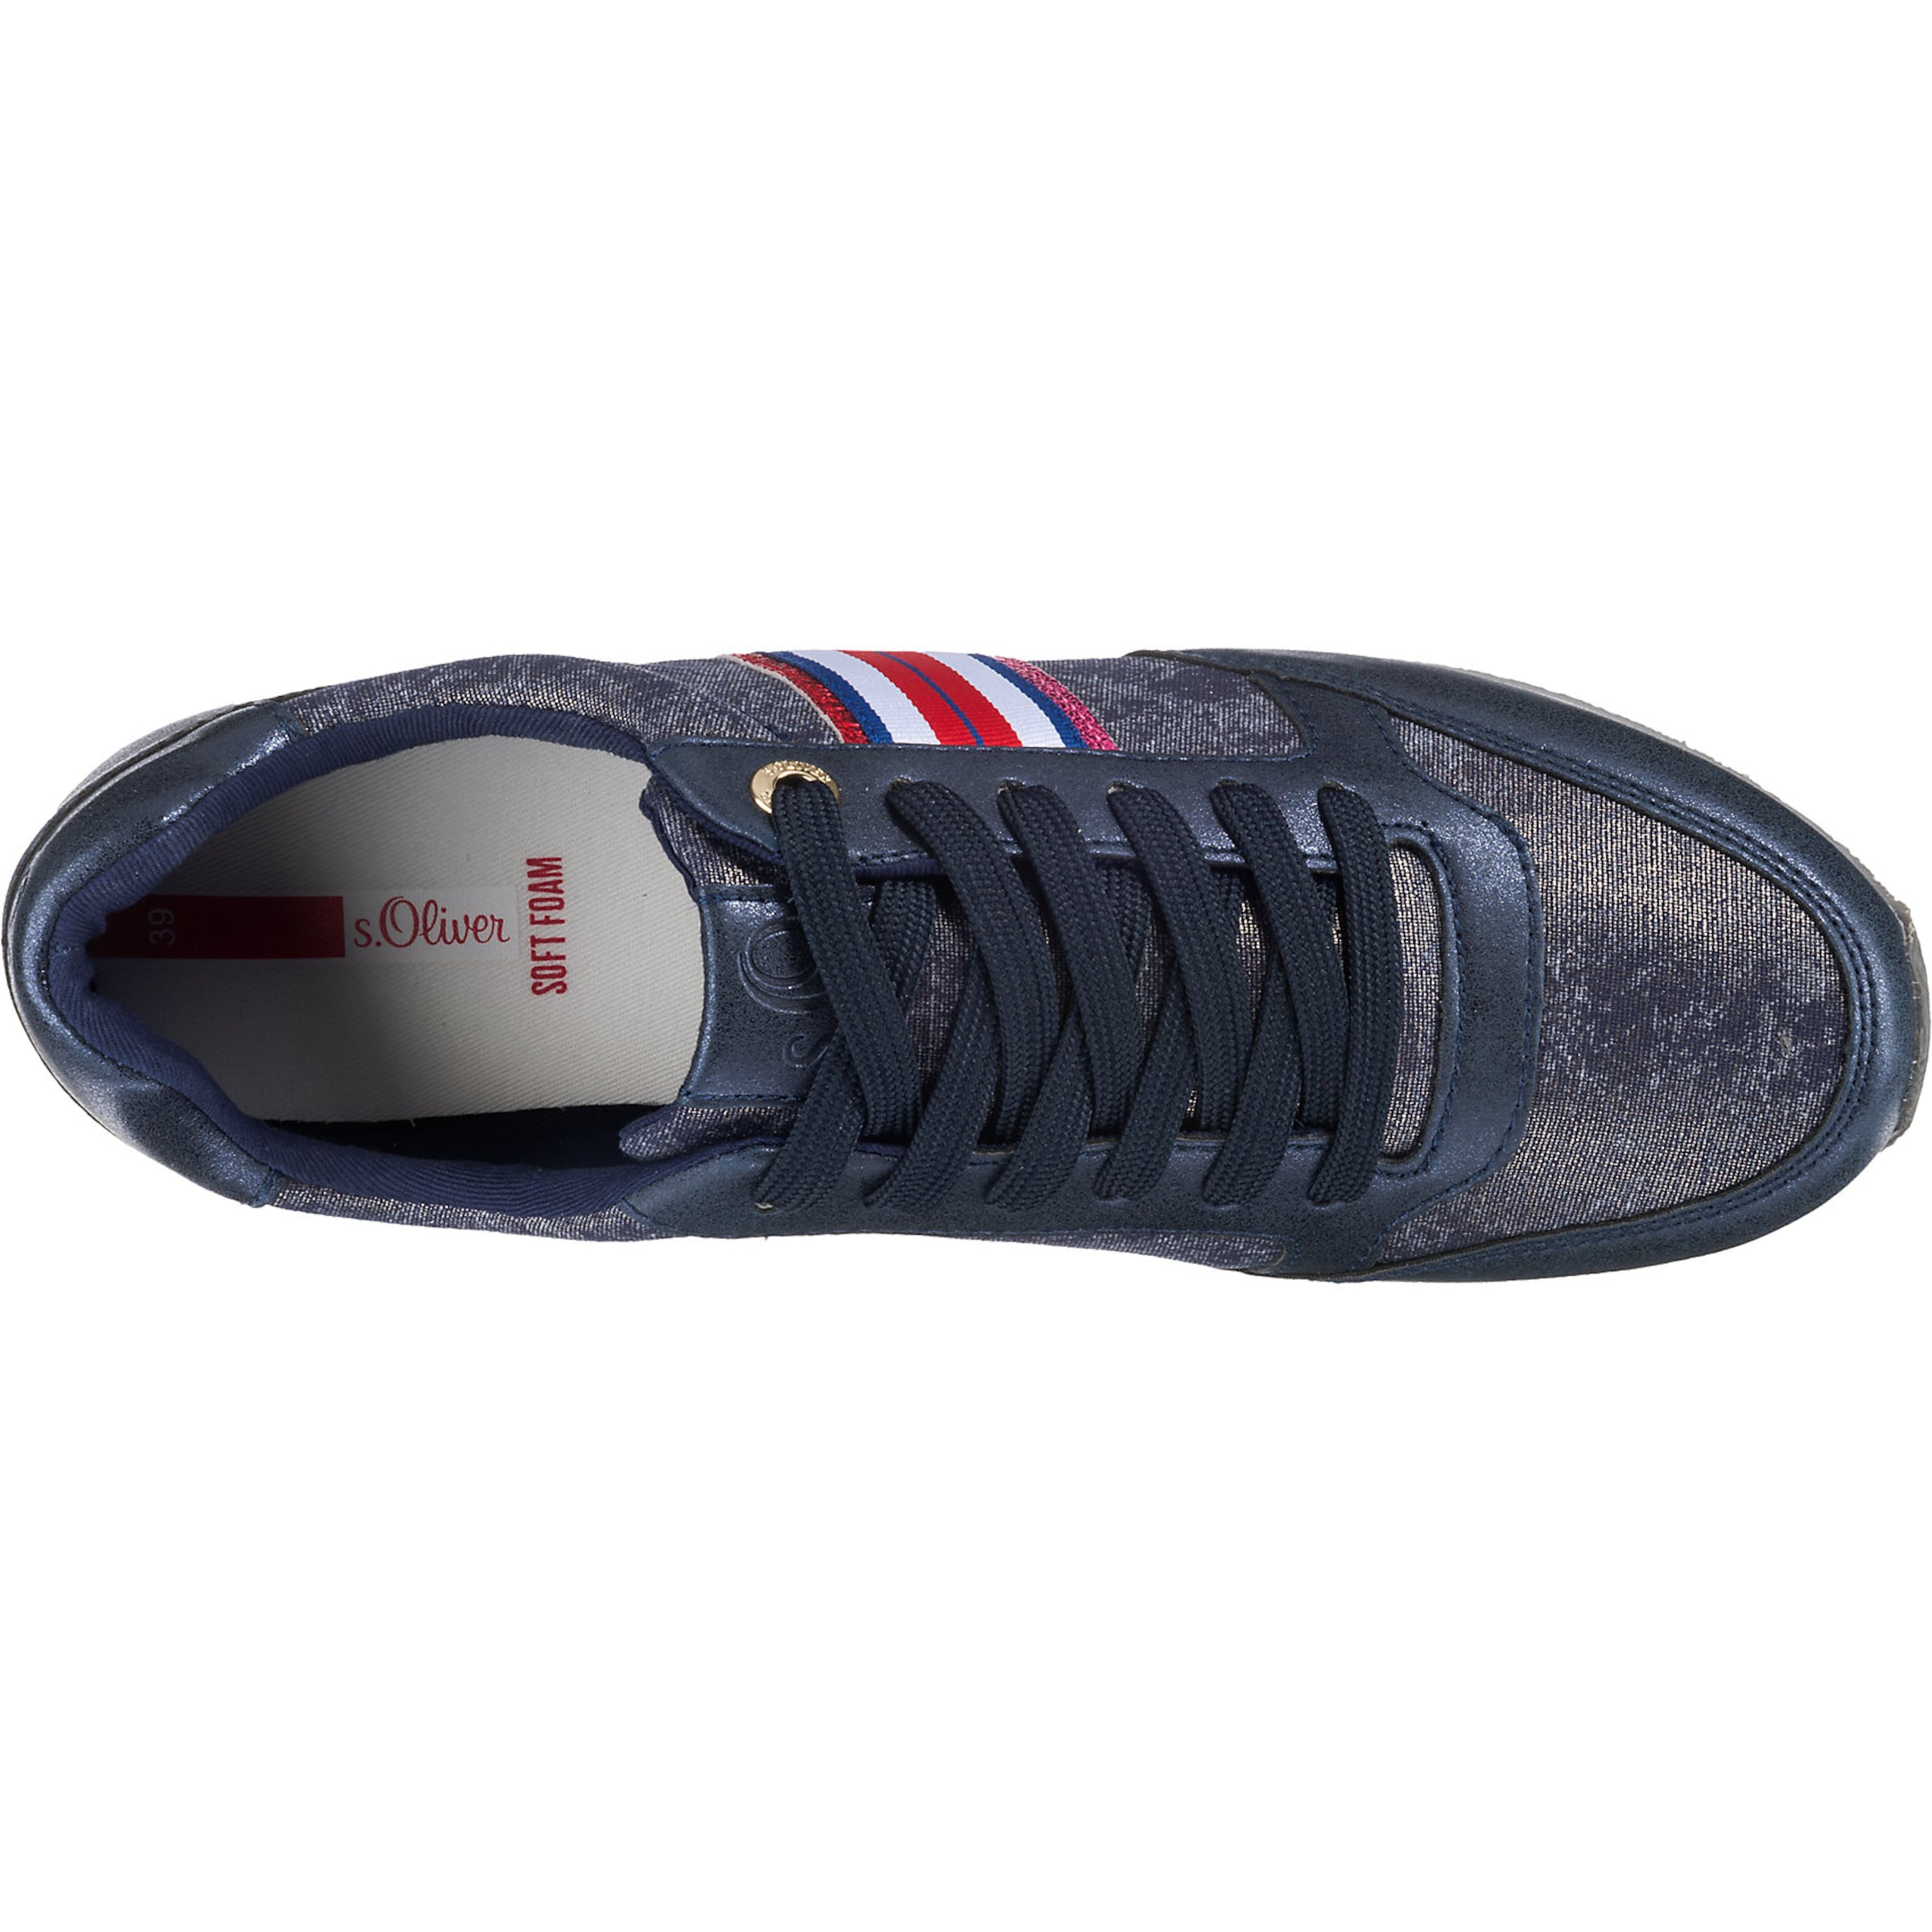 Navy oliver Red S Sneakers Label In nNk8OXZ0wP